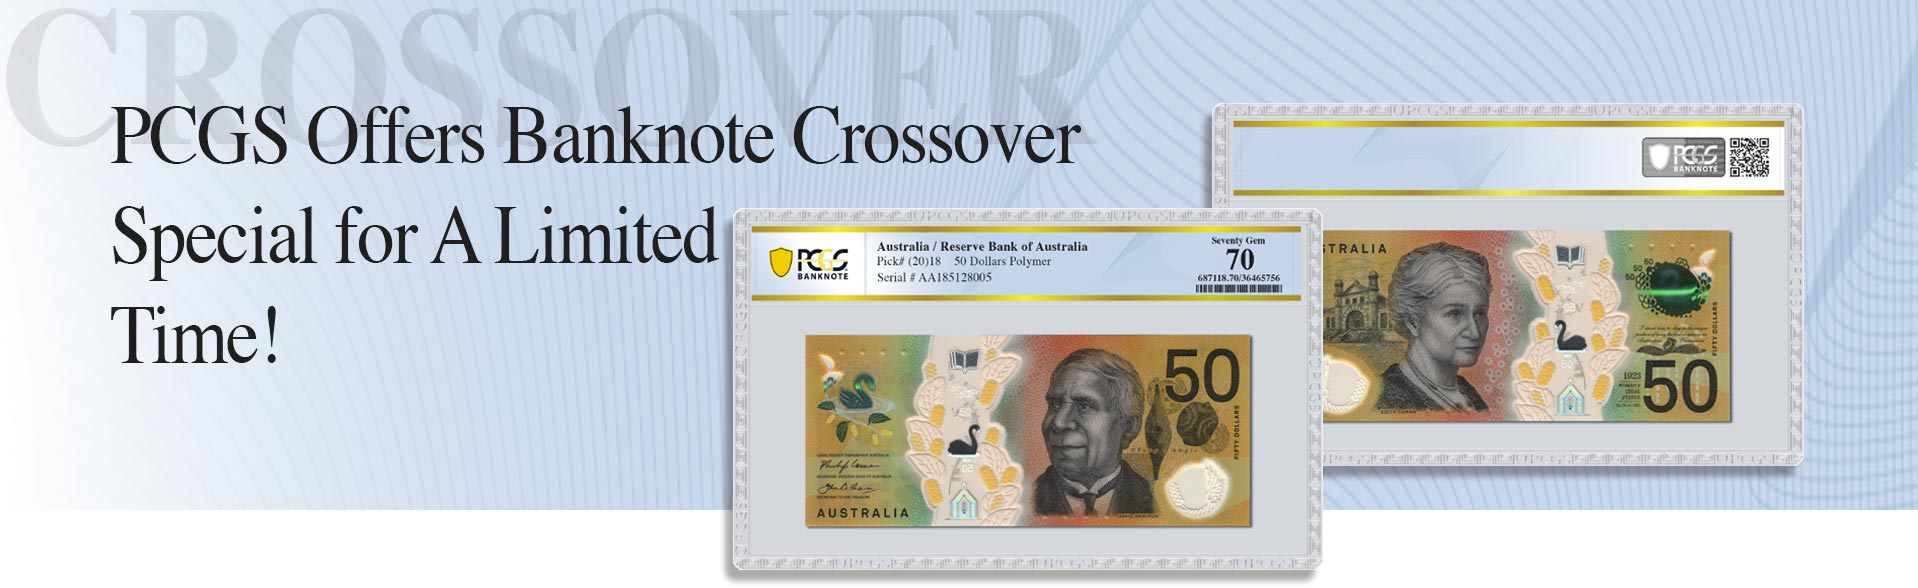 PCGS Offers Banknote Crossover Special for a Limited Time!